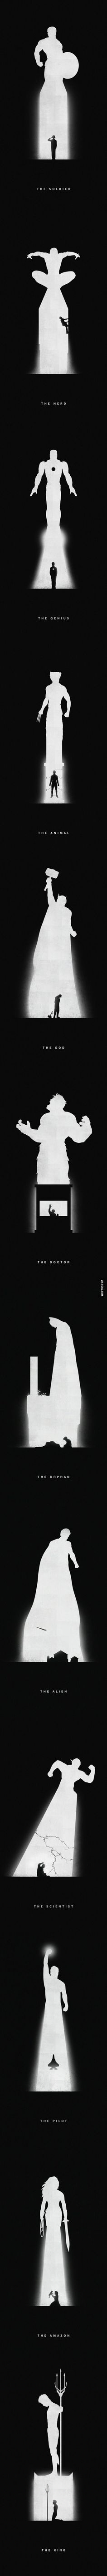 Very Cool Superhero Artwork  // funny pictures - funny photos - funny images - funny pics - funny quotes - #lol #humor #funnypictures